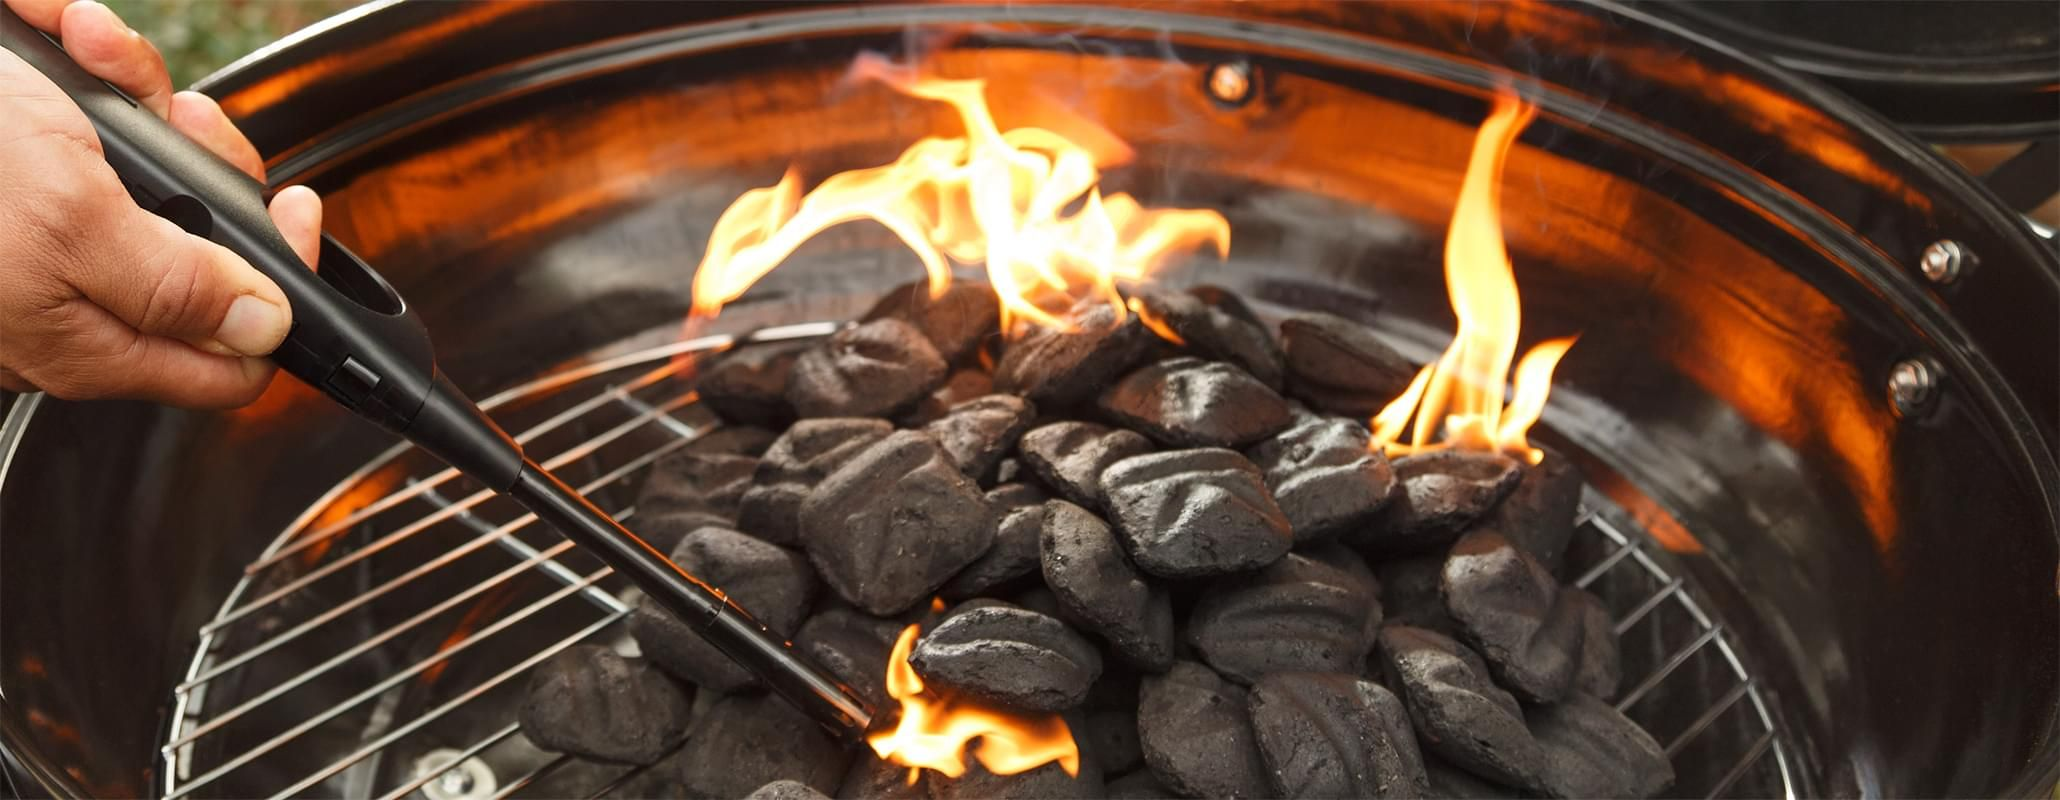 How to light a charcoal grill kingsford with images